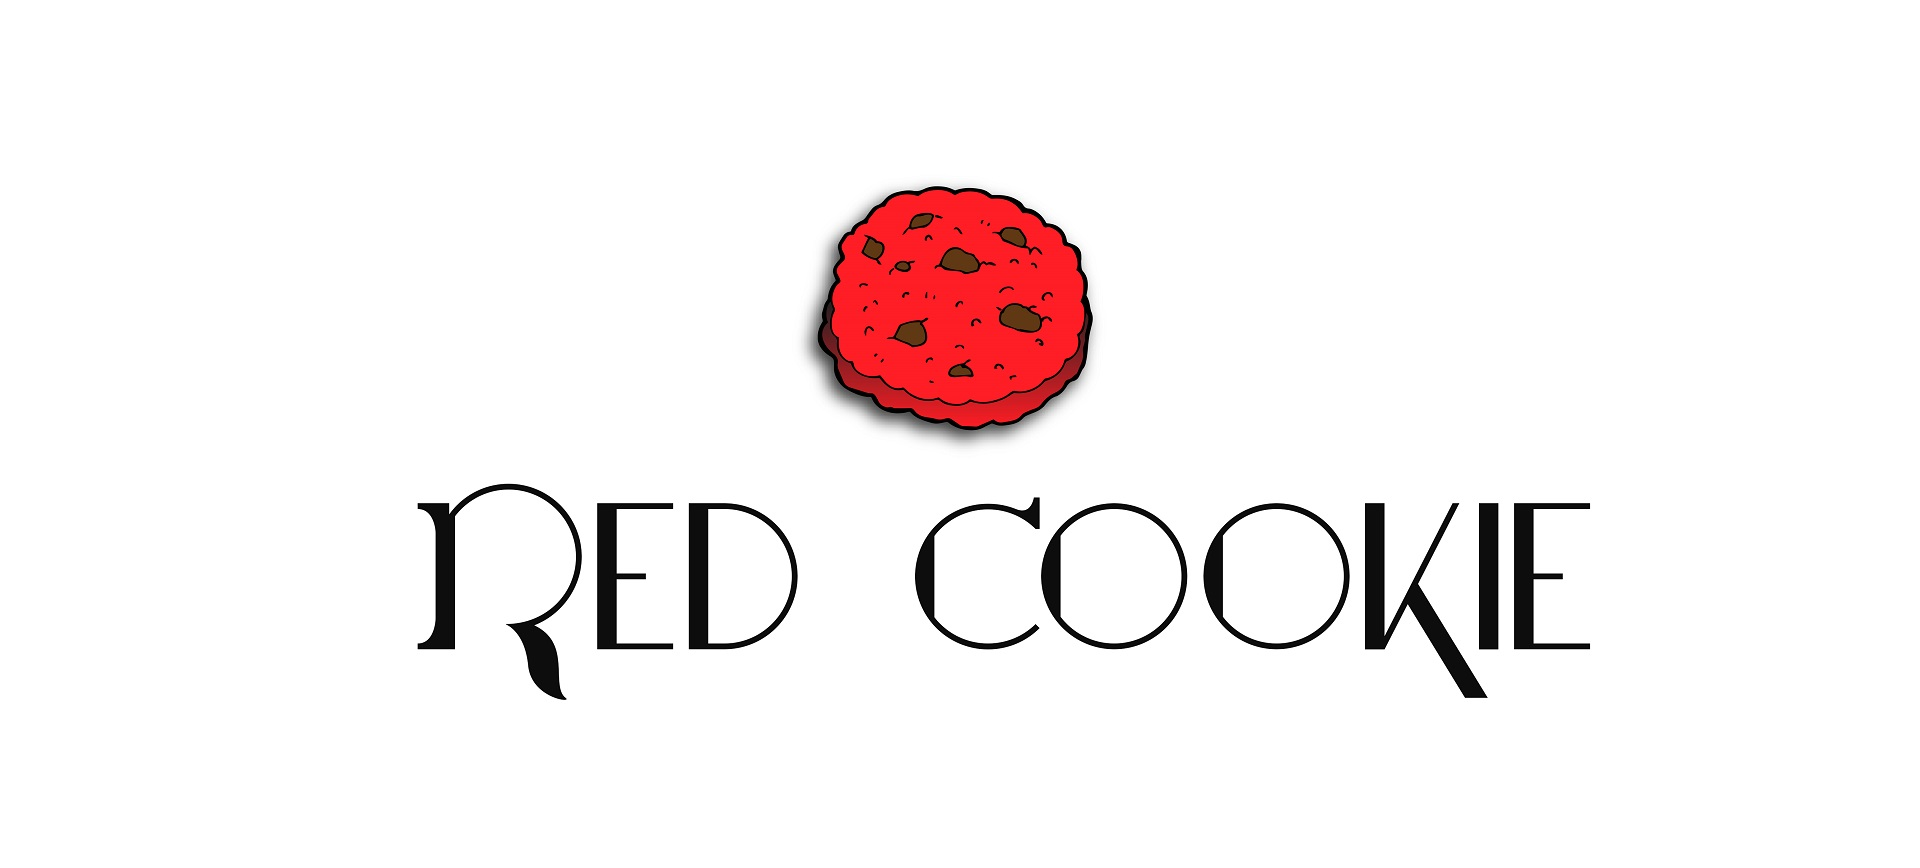 Red Cookie